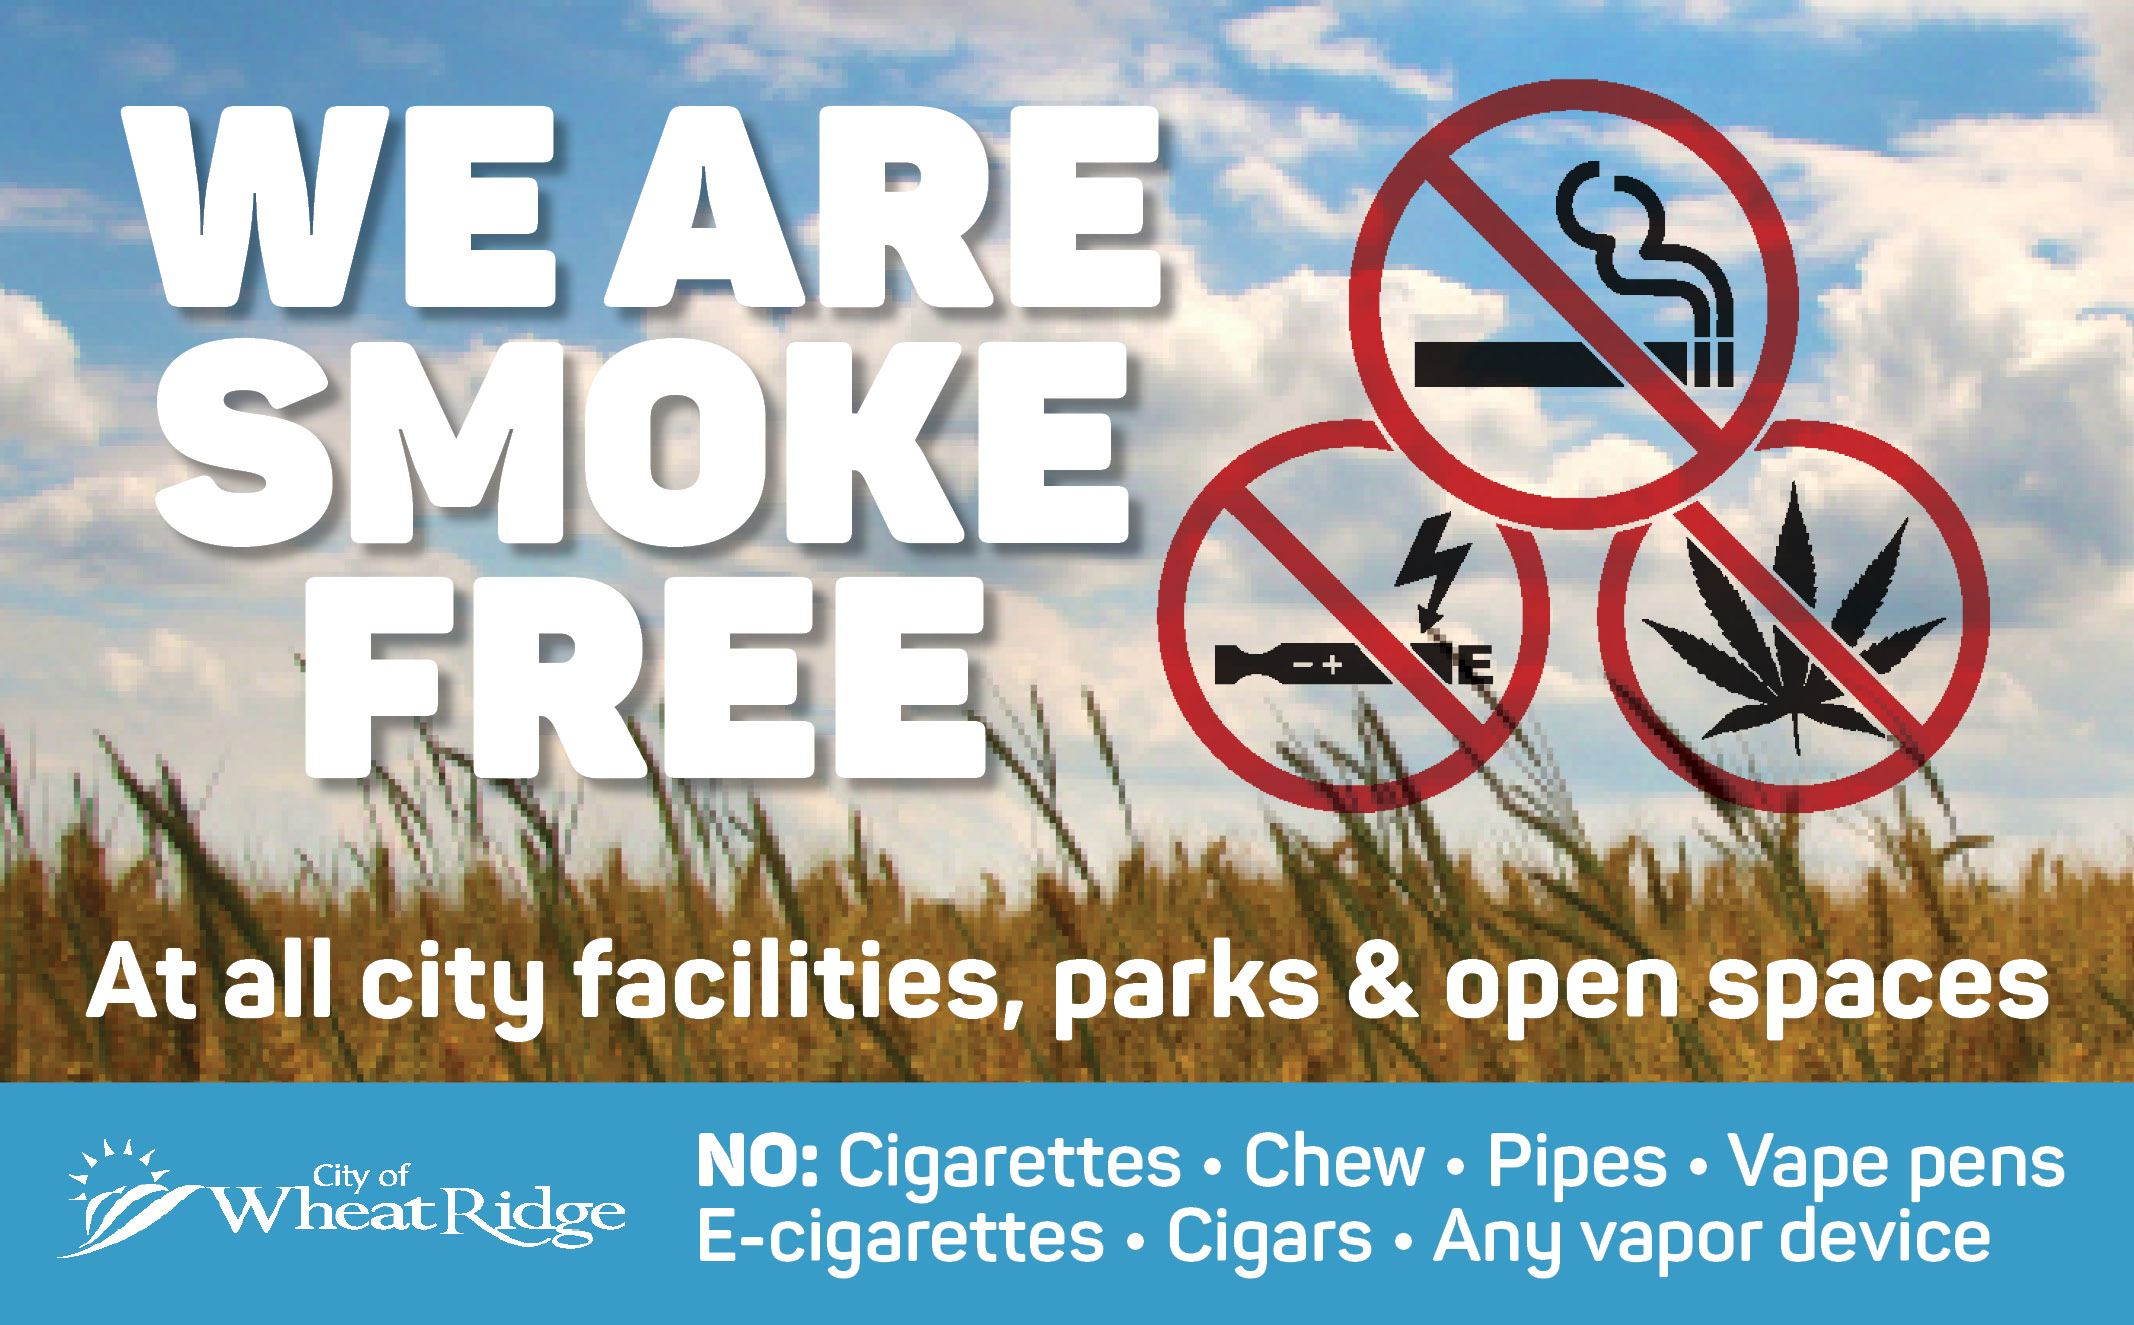 No Smoking at City facilities, parks and open spaces